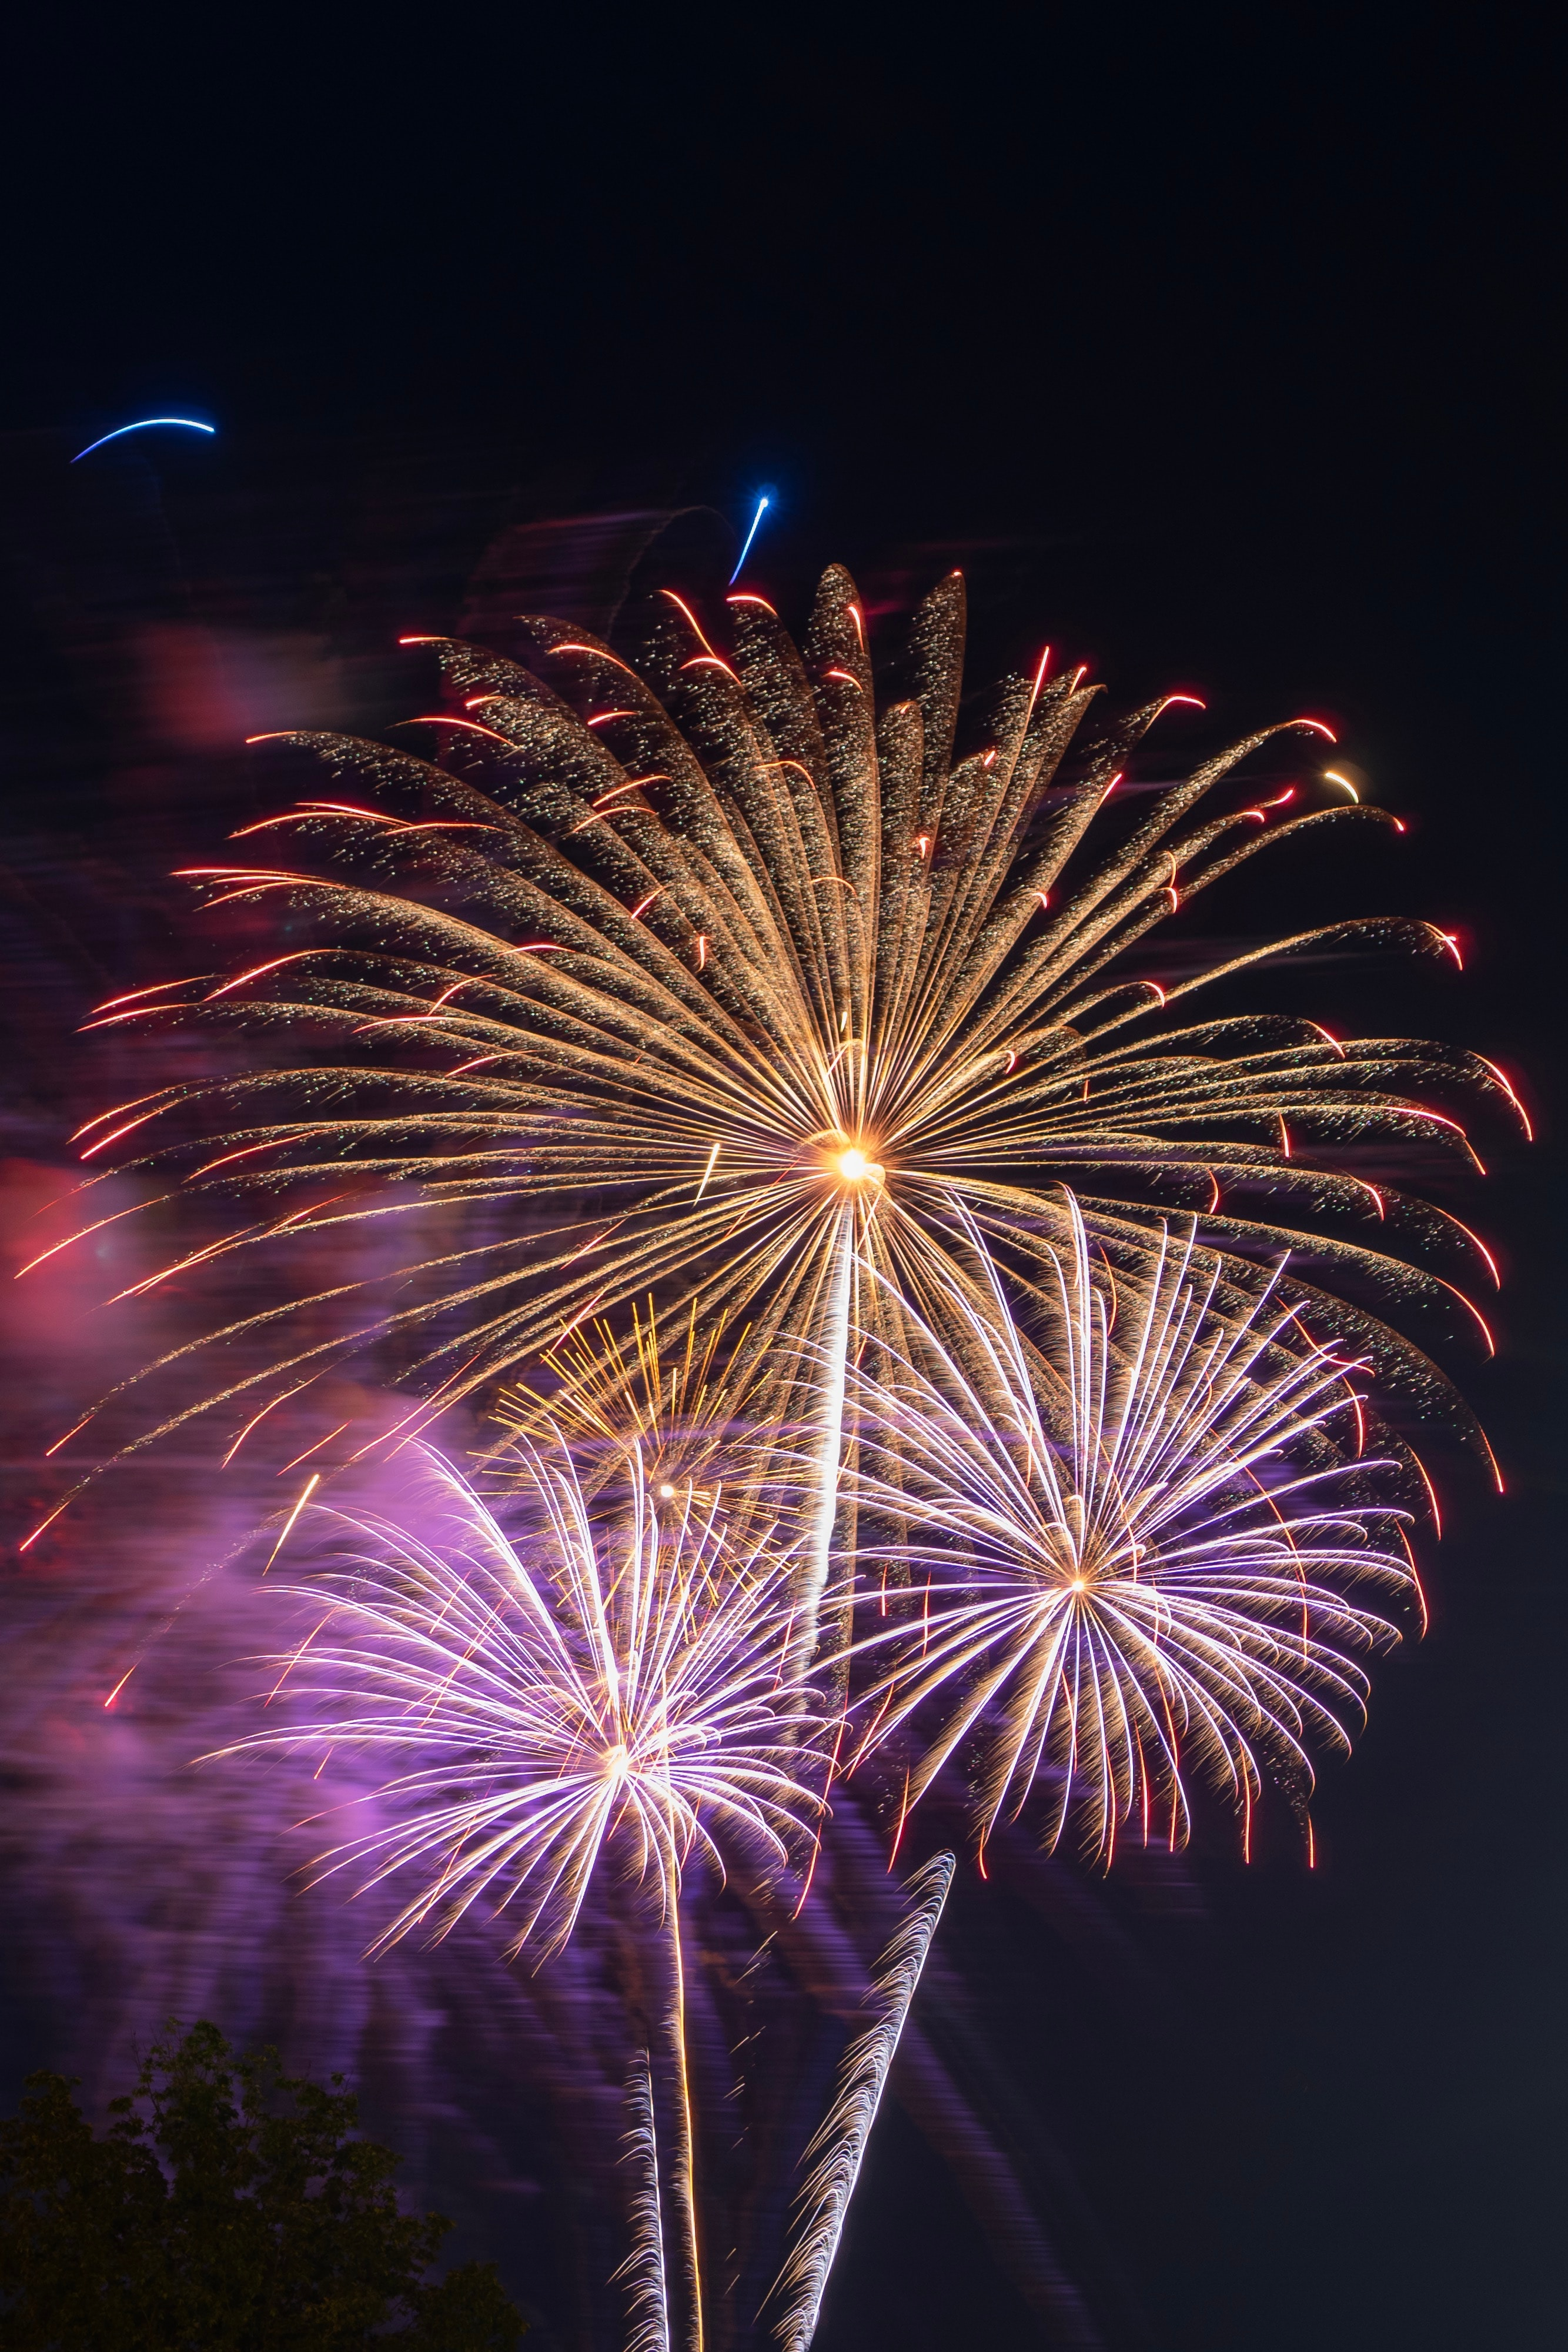 146290 Screensavers and Wallpapers Sparks for phone. Download Holidays, Smoke, Night, Salute, Sparks, Fireworks, Firework pictures for free